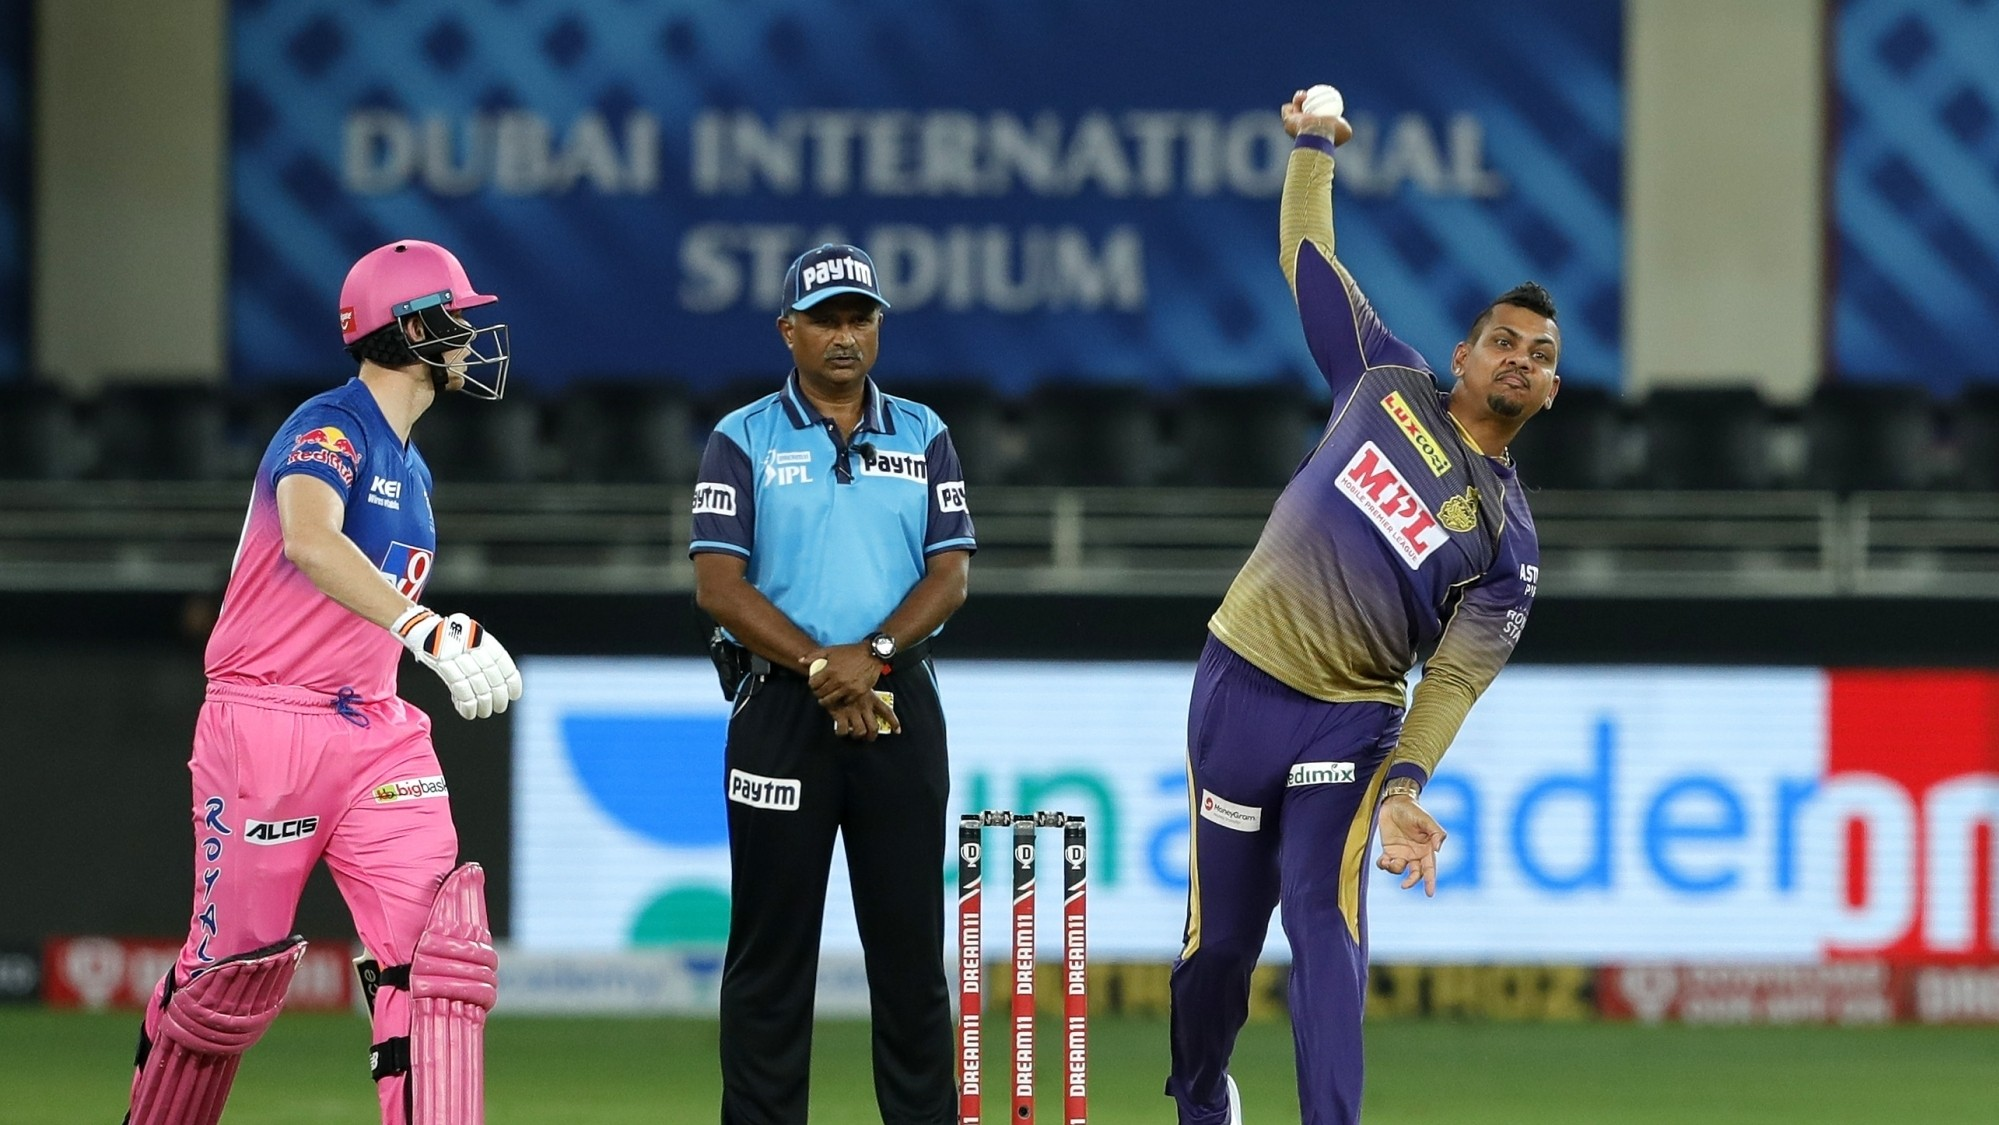 IPL 2020: IPL's suspect bowling action committee clears Sunil Narine